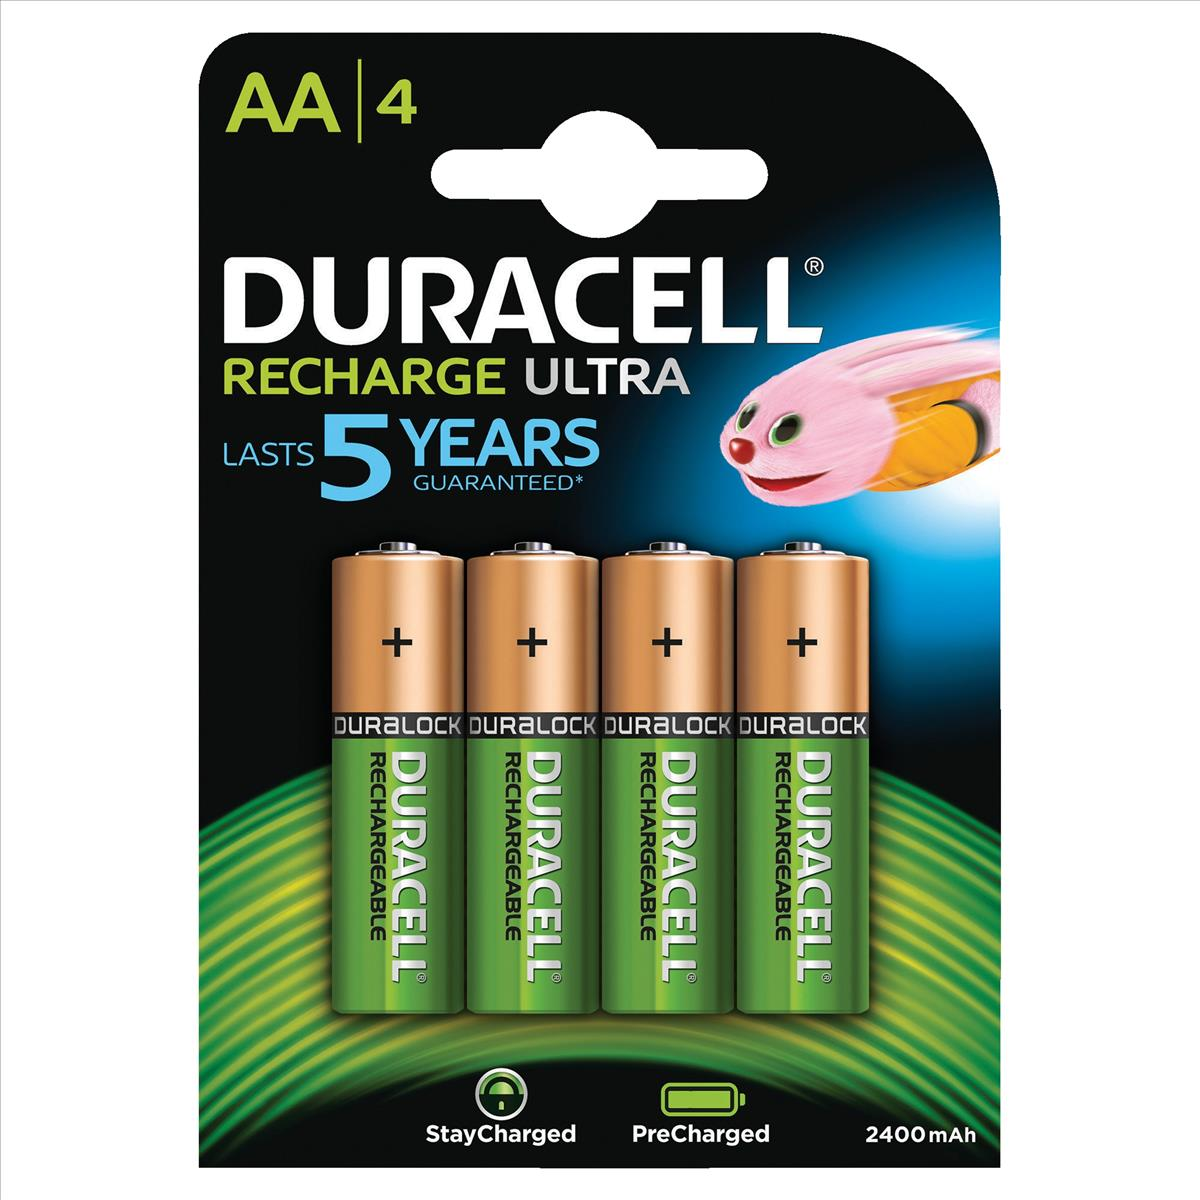 Image for Duracell Stay Charged Battery Long-life Rechargeable 1950mAh AA Size 1.2V Ref 81418237 [Pack 4]